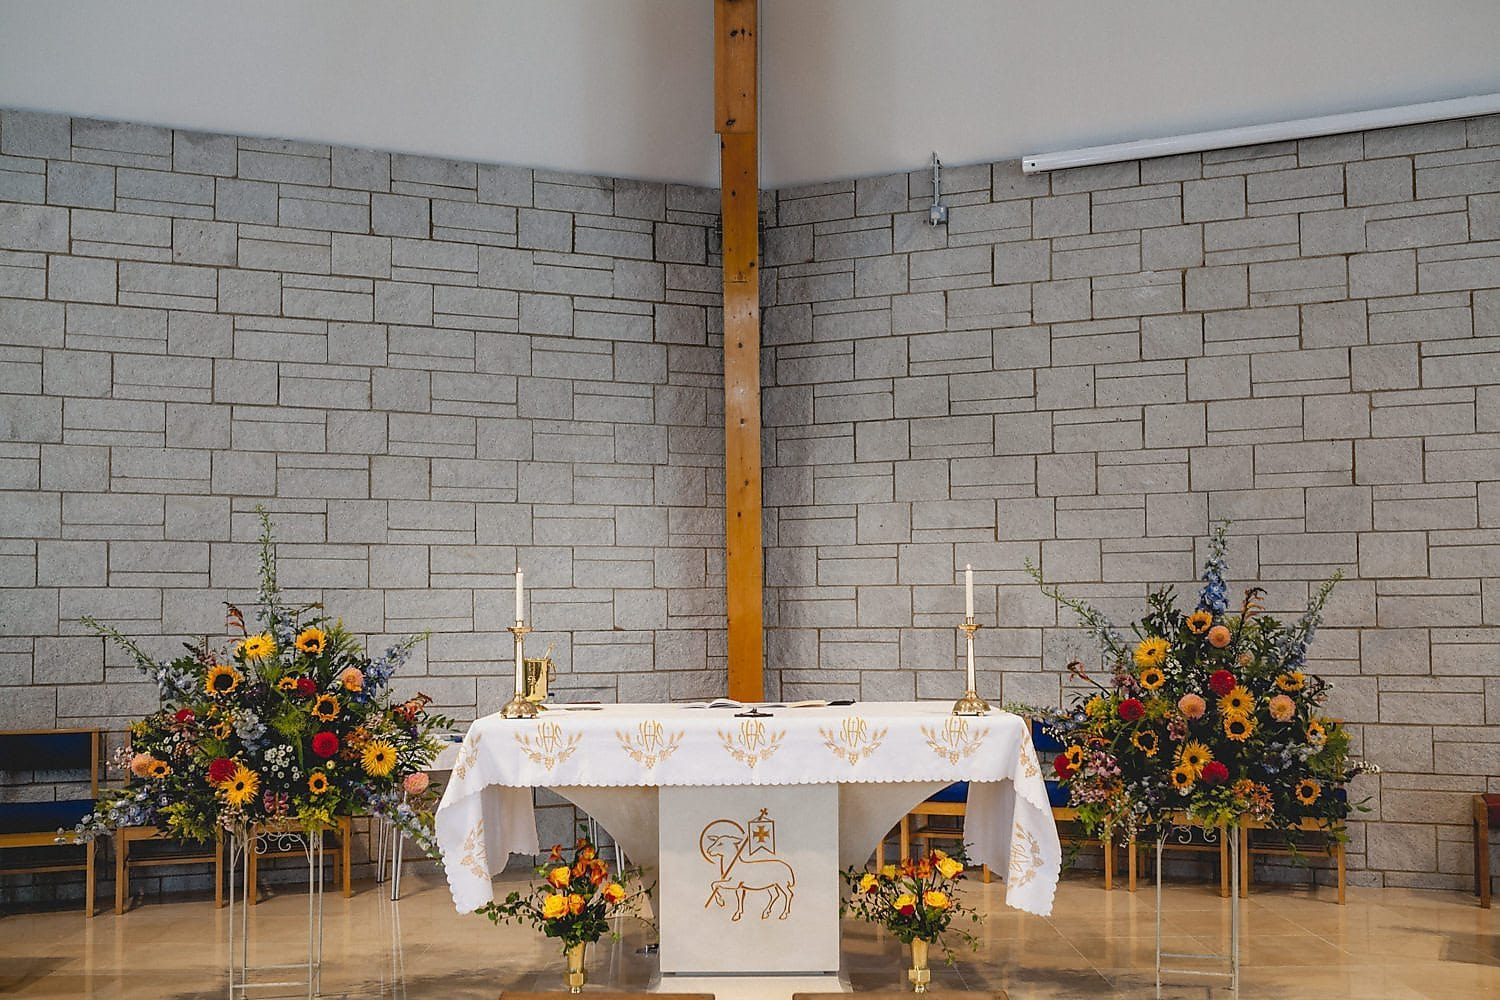 The altar at the church is flanked by large floral arrangements with red, yellow and blue flowers